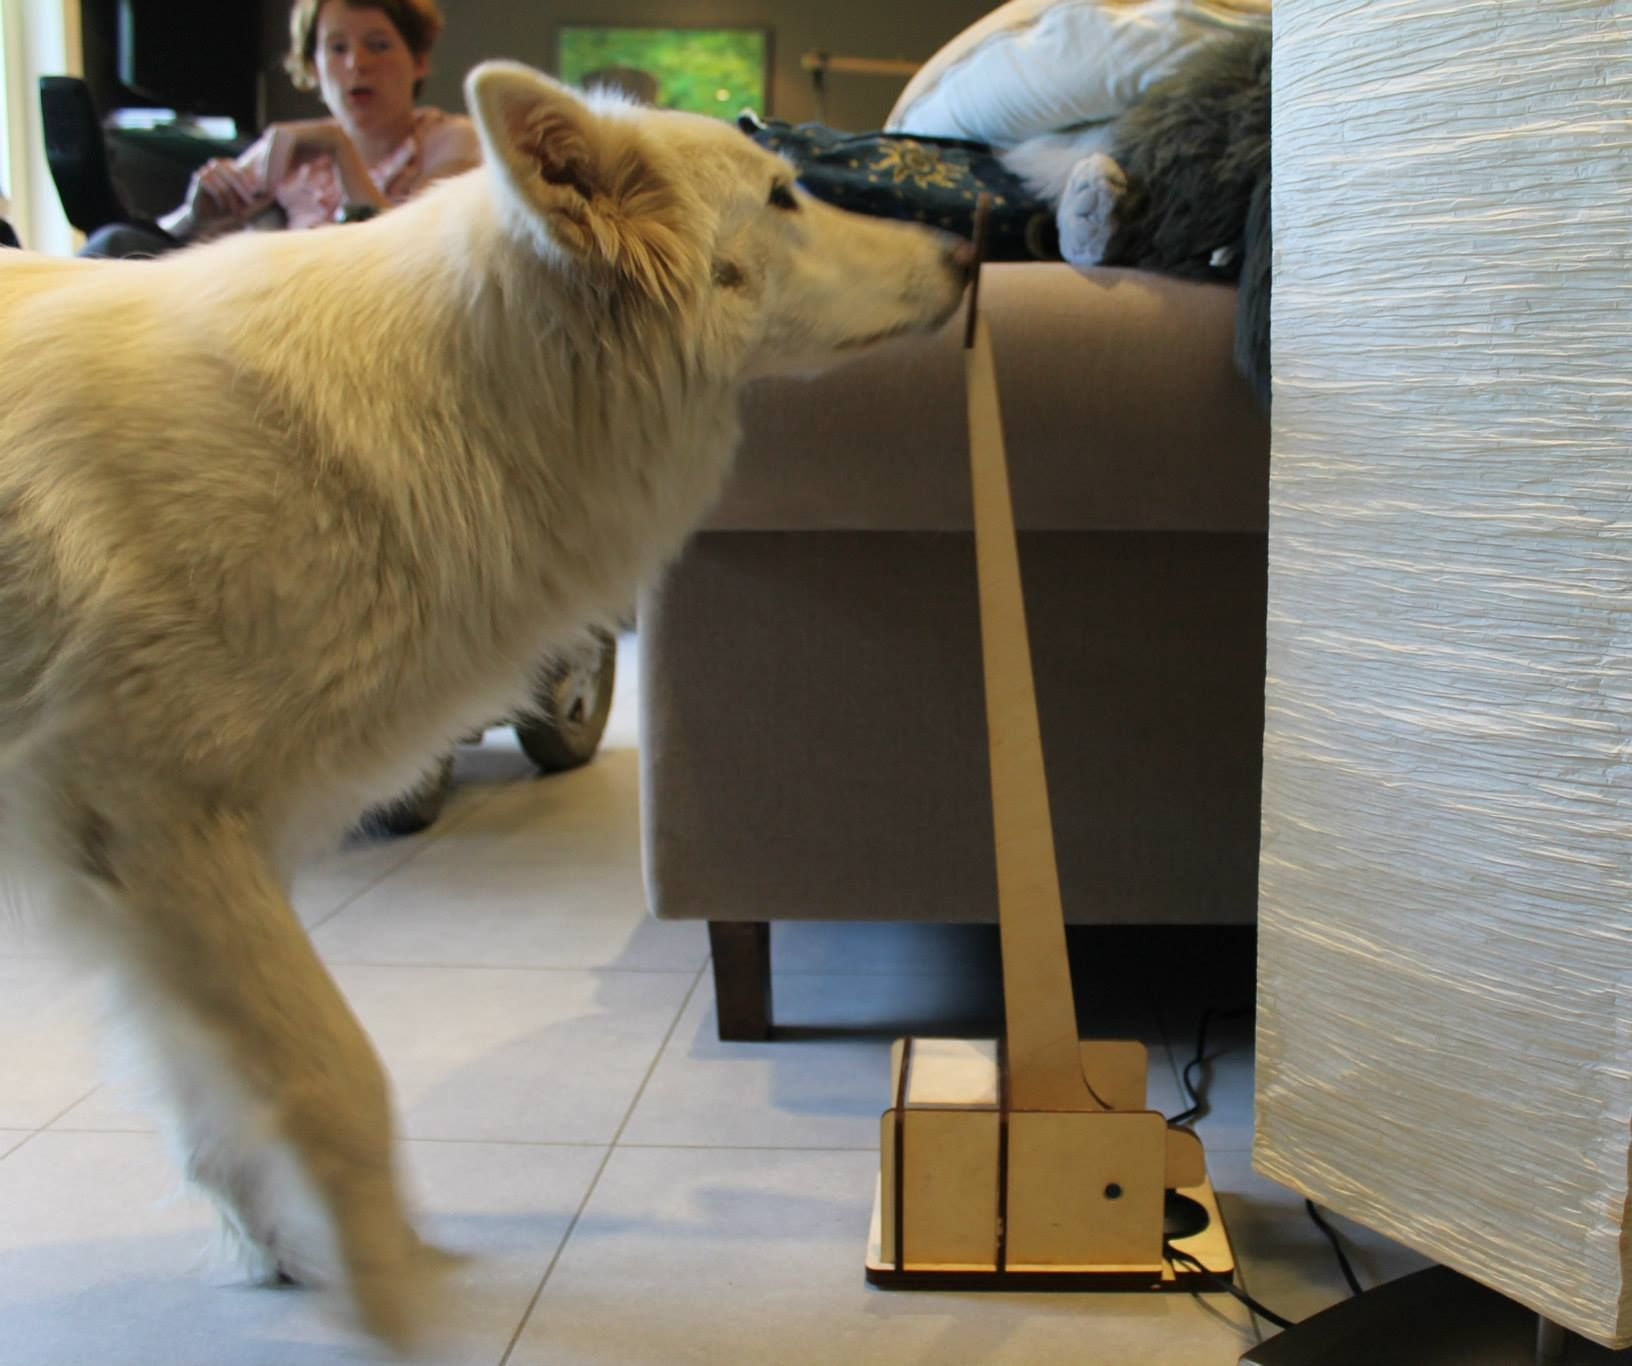 DIY lamp switch for dogs